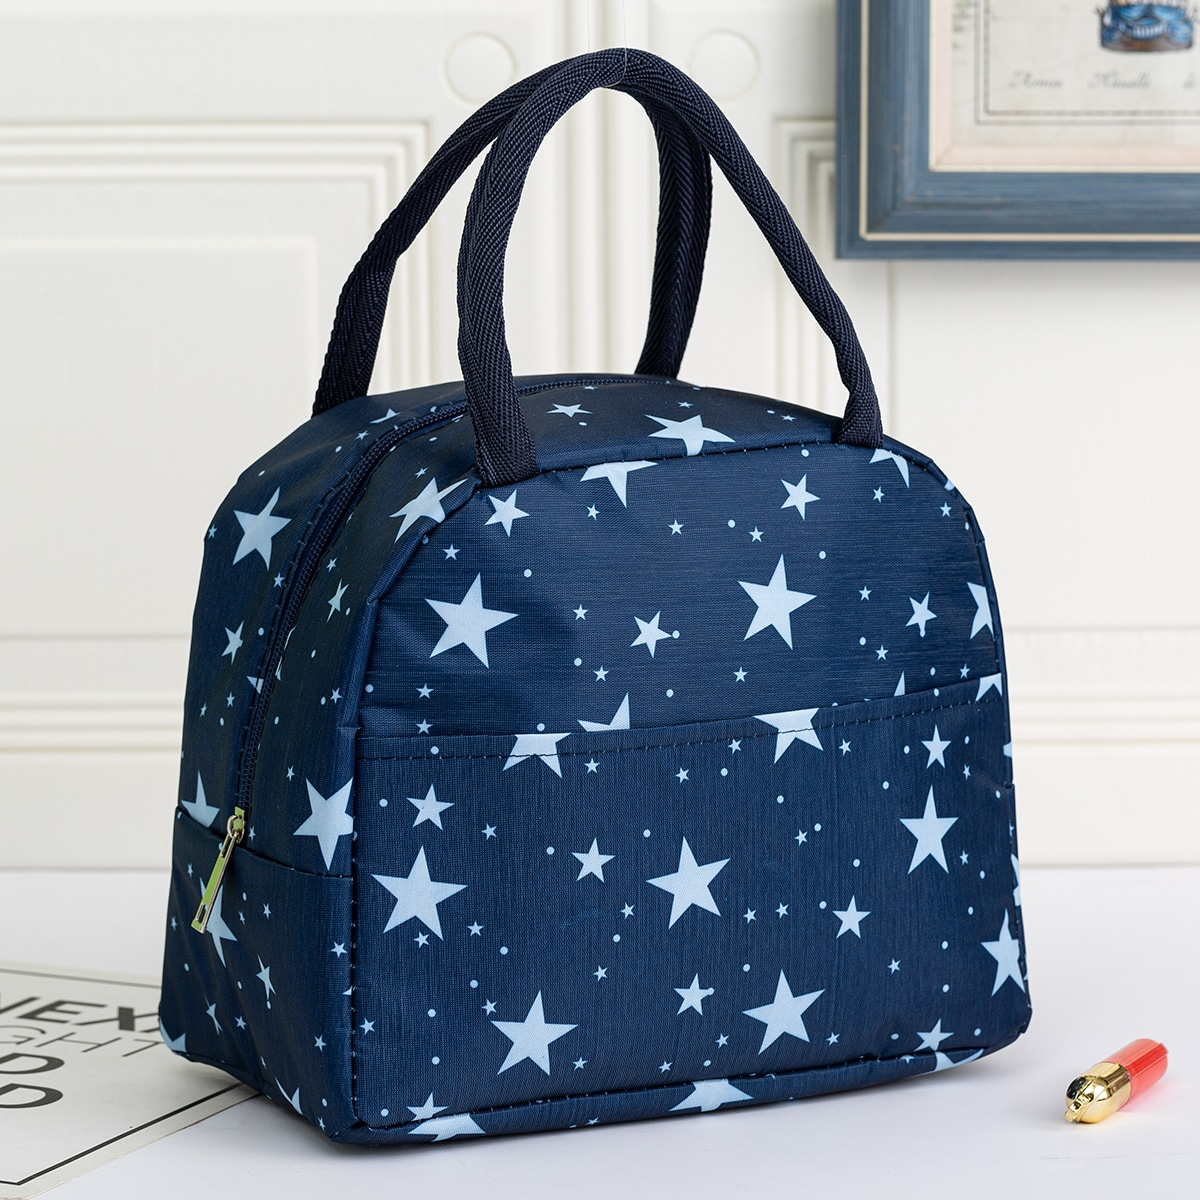 SHEIN / Star Print Insulated Lunch Bag